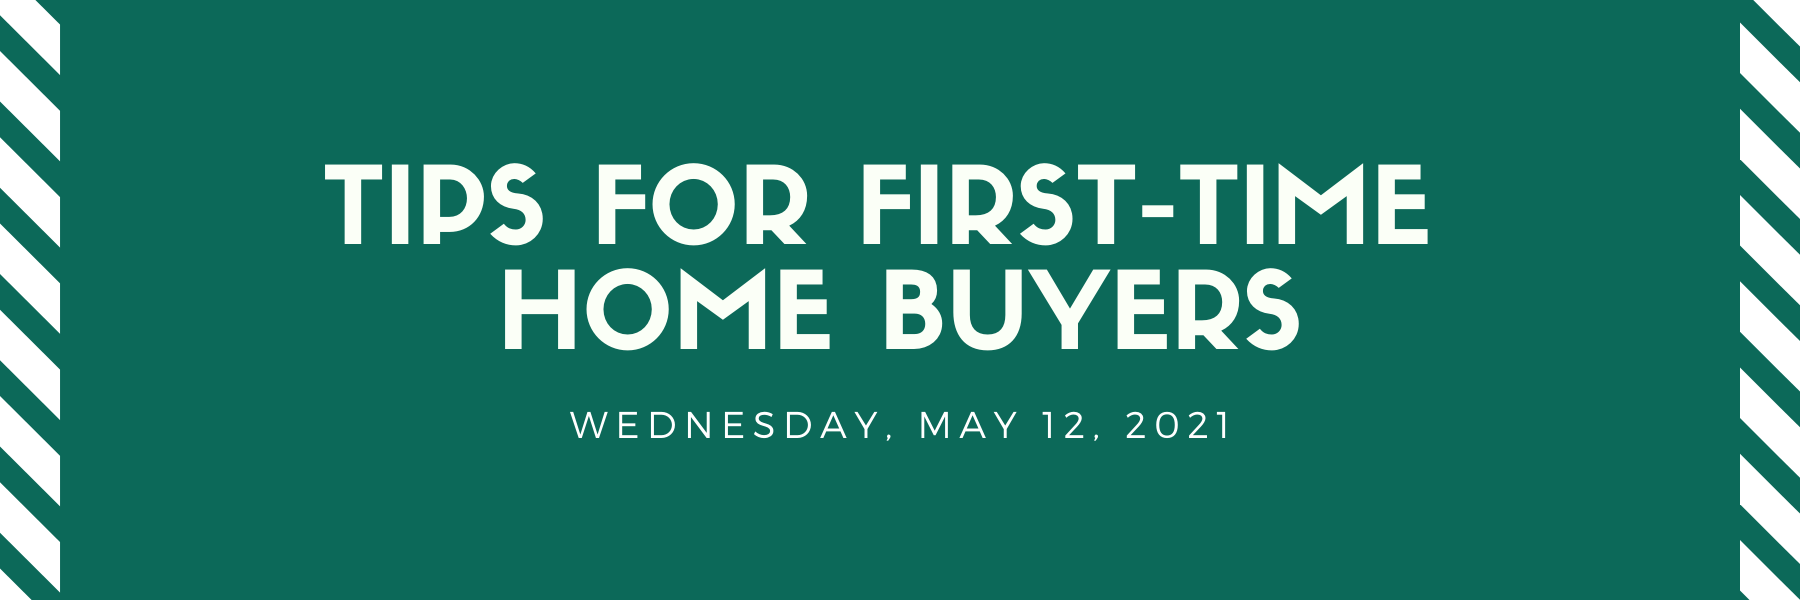 Tips For First-Time Home Buyers - May 12 Thumbnail